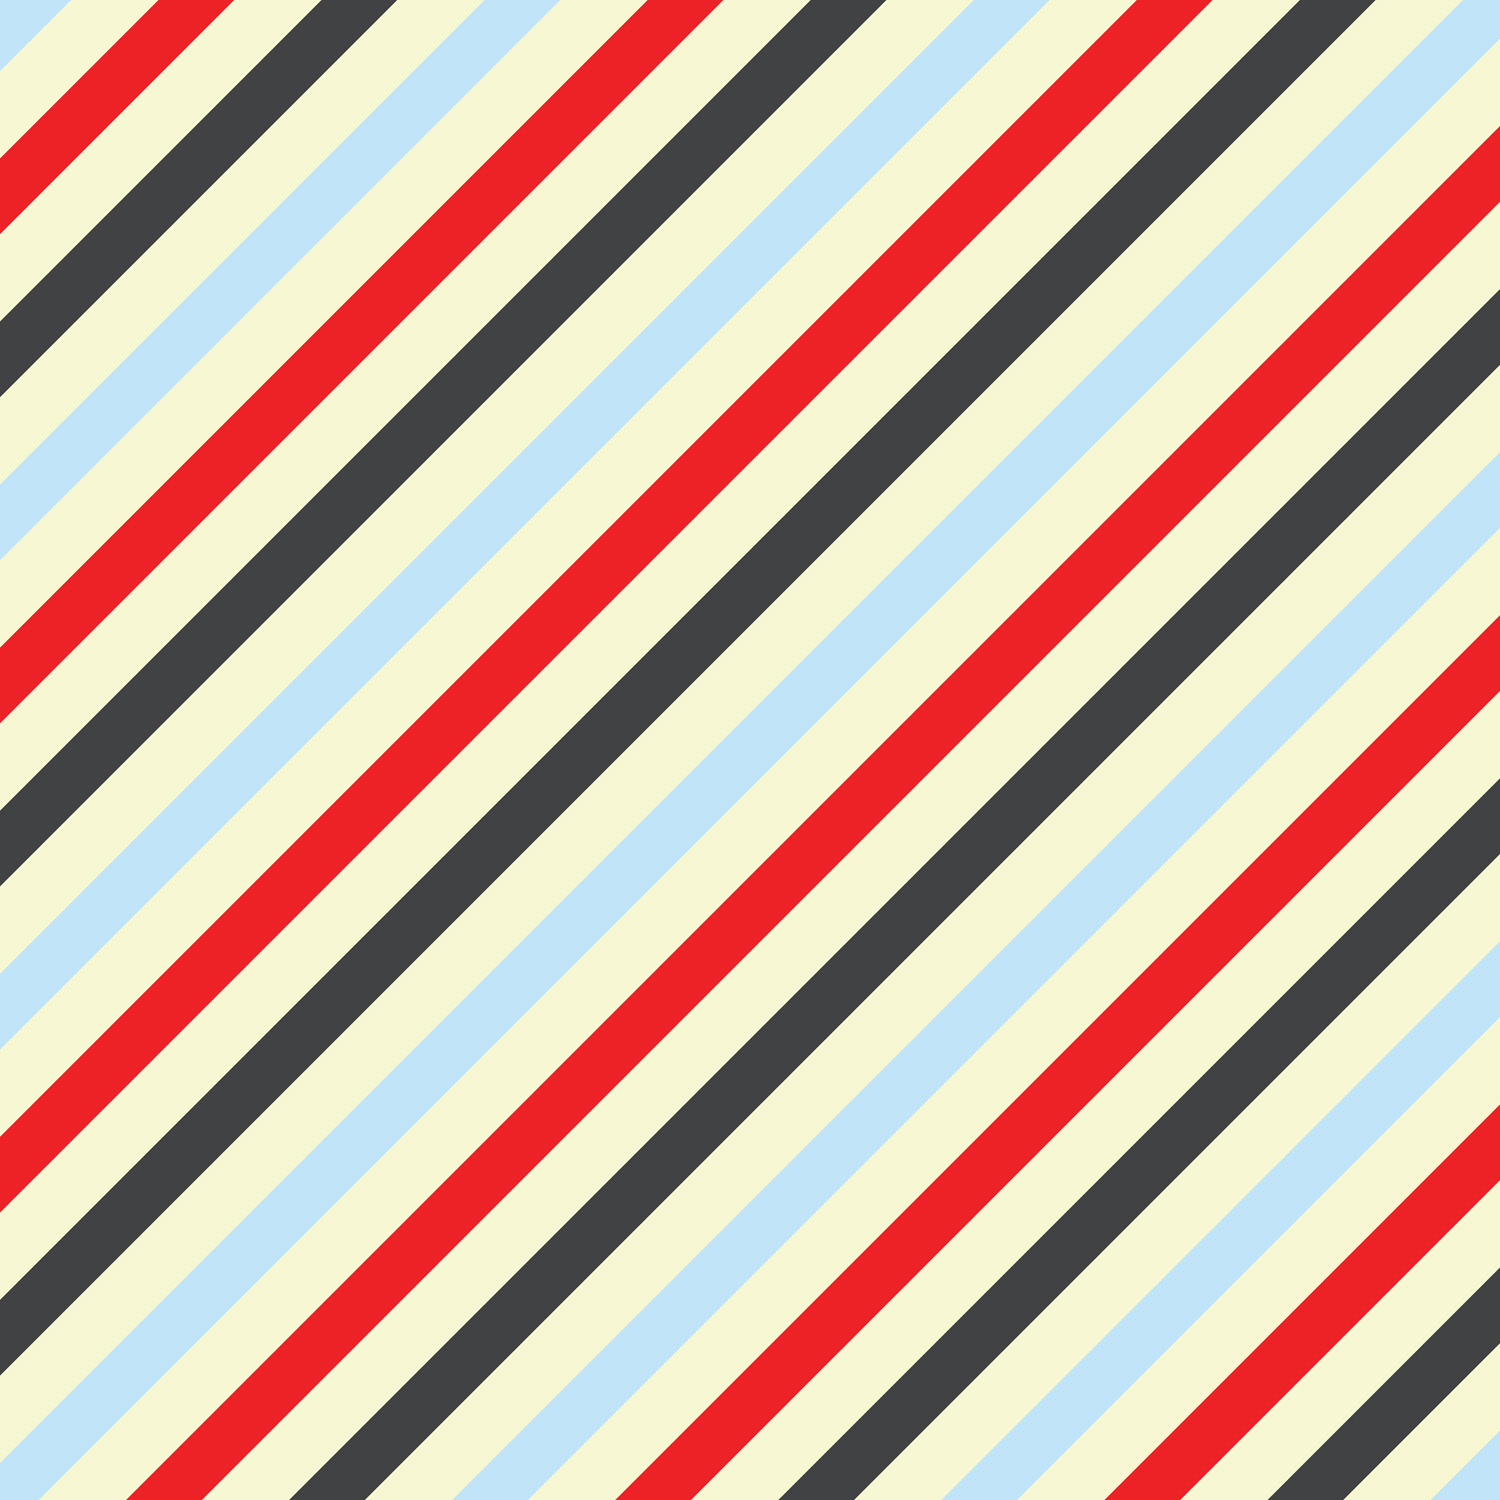 Red And Blue Curtains With Diagonal Stripes 57 Eloquent